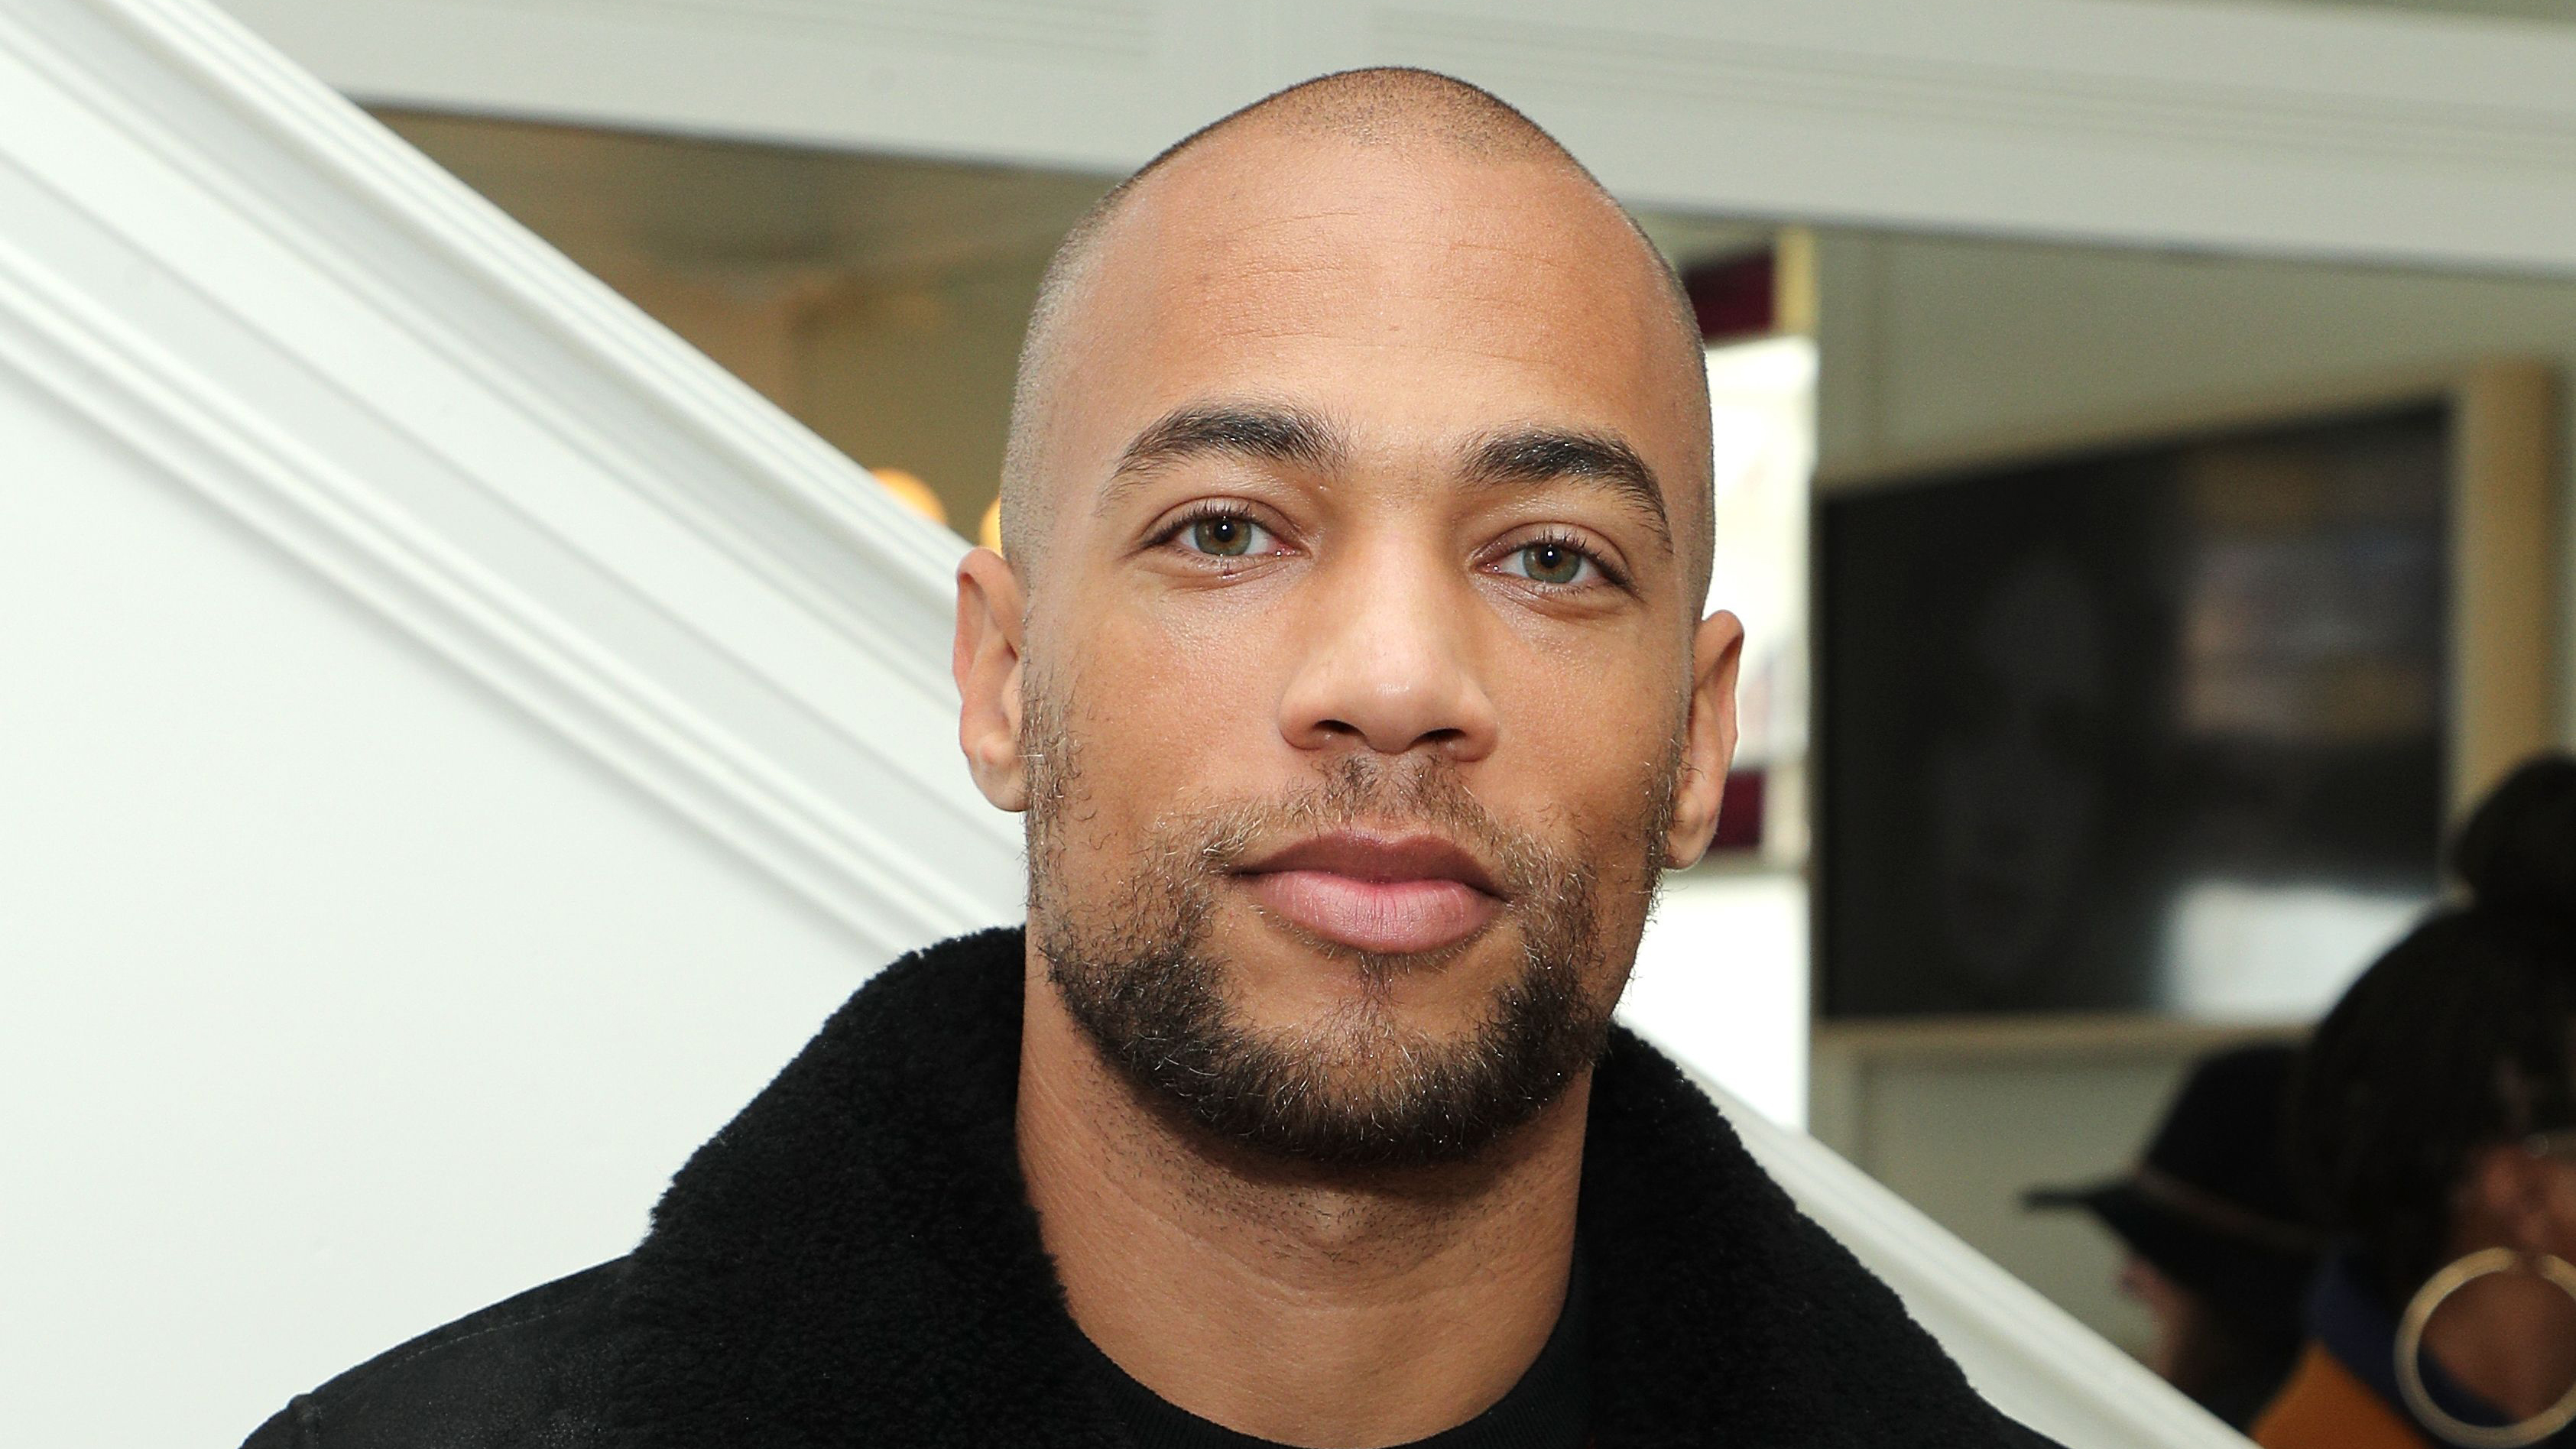 'Insecure' Actor Kendrick Sampson Hit by Rubber Bullets at Los Angeles Protest